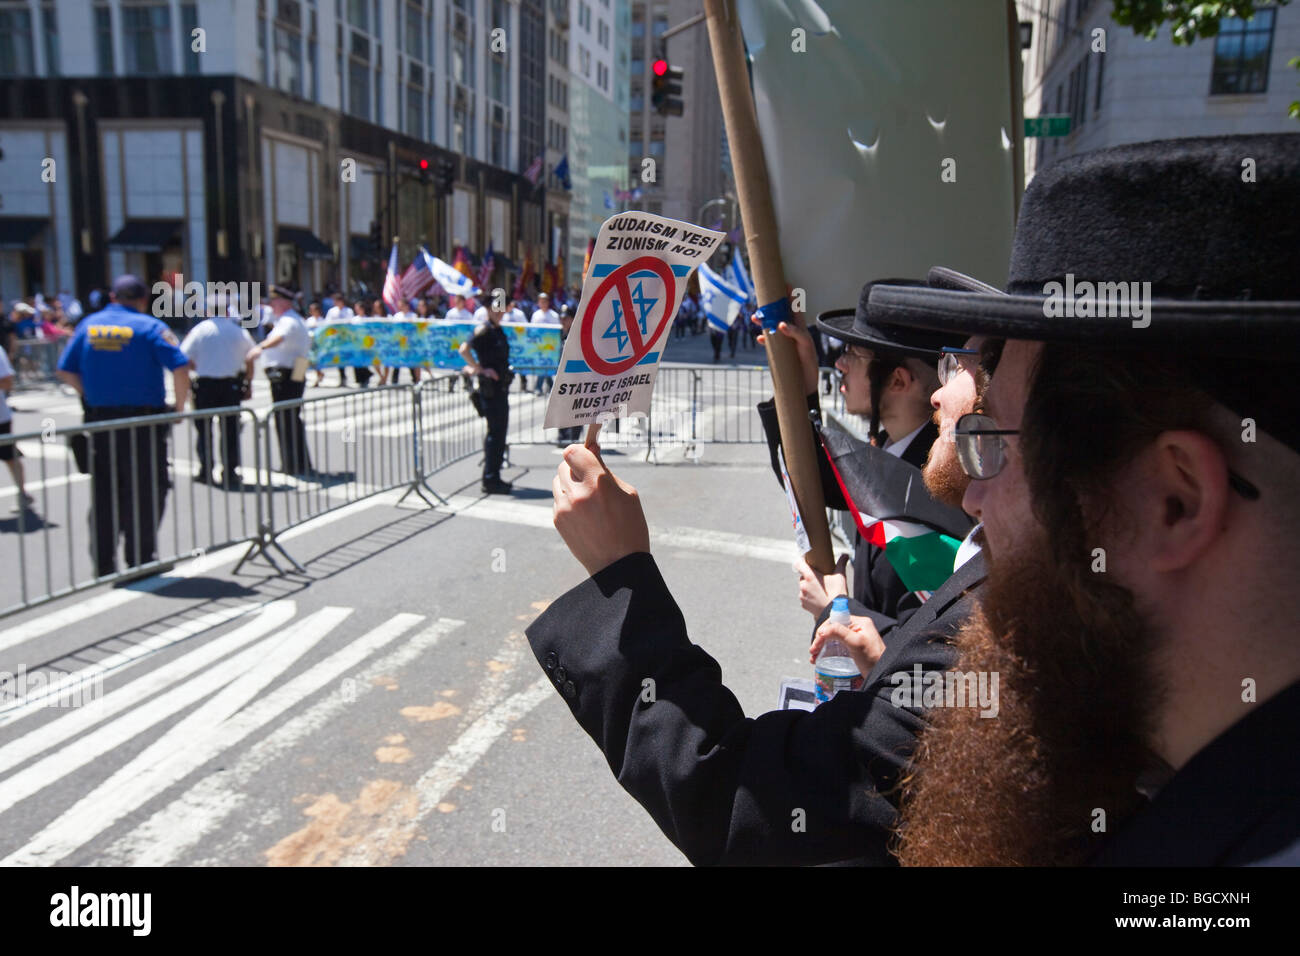 Hasidic Jewish Rabbis against Zionism at the Israel Parade in New York City - Stock Image